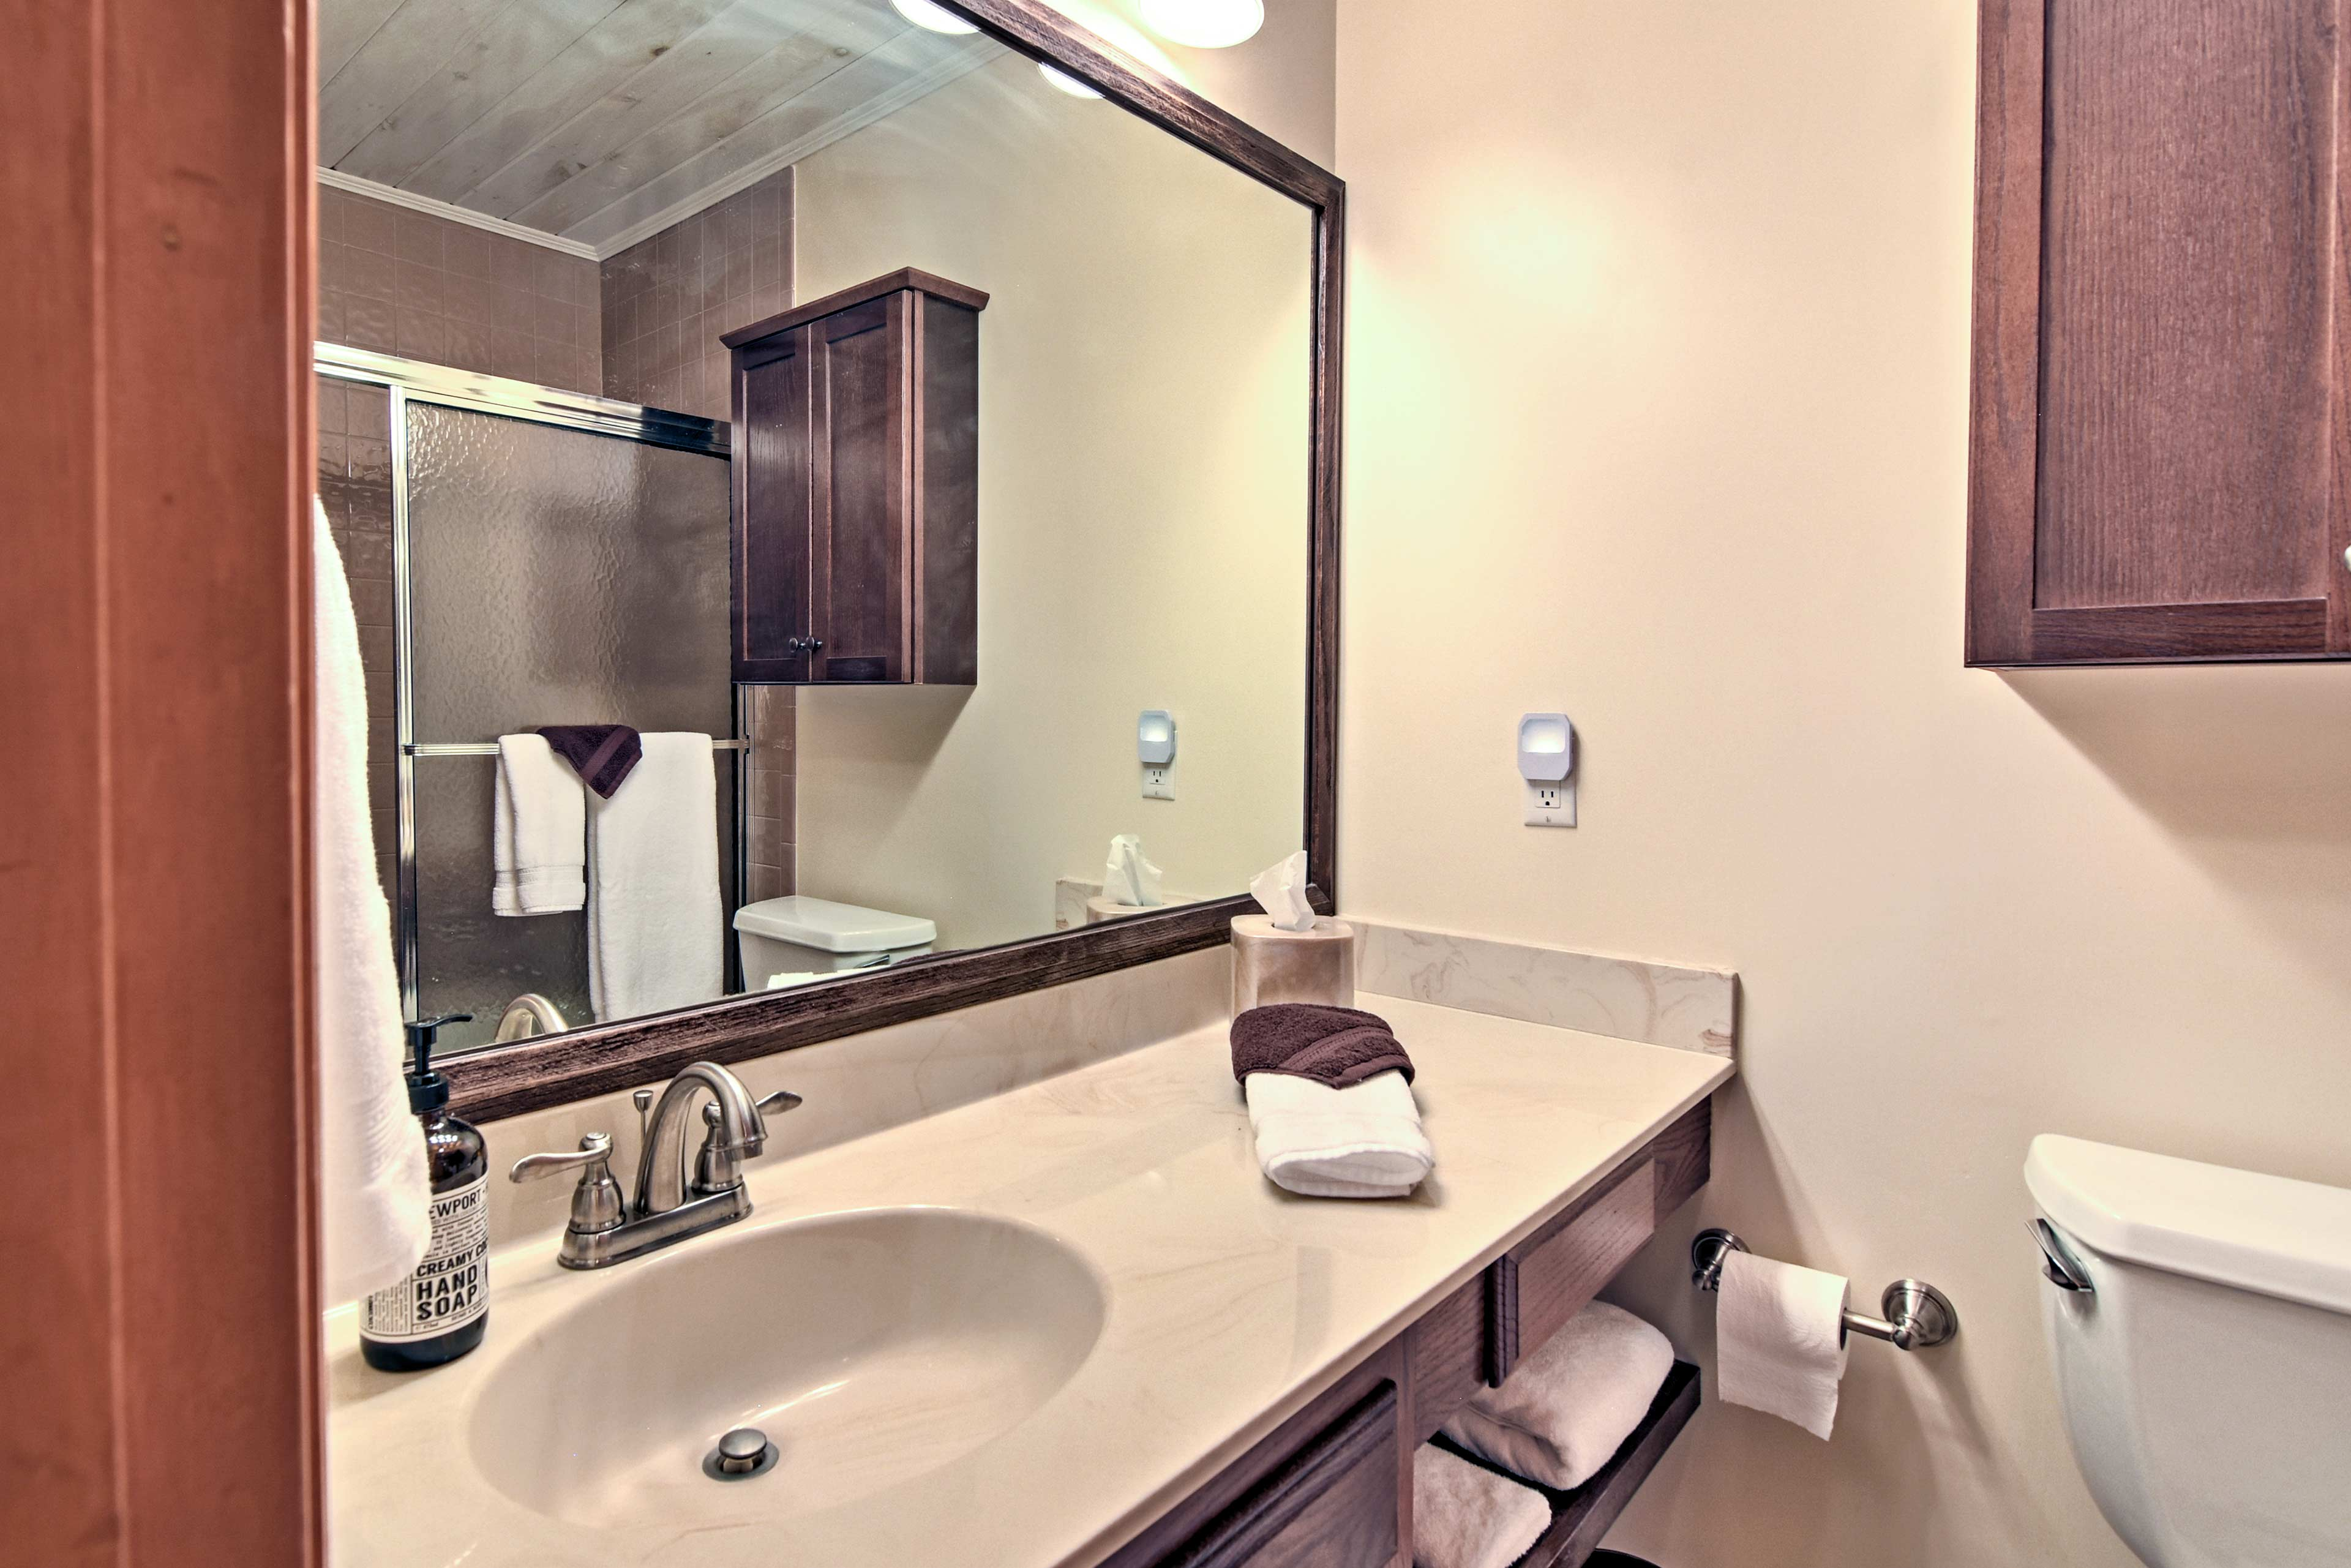 The second full bathroom offers a shower/tub combo as well.